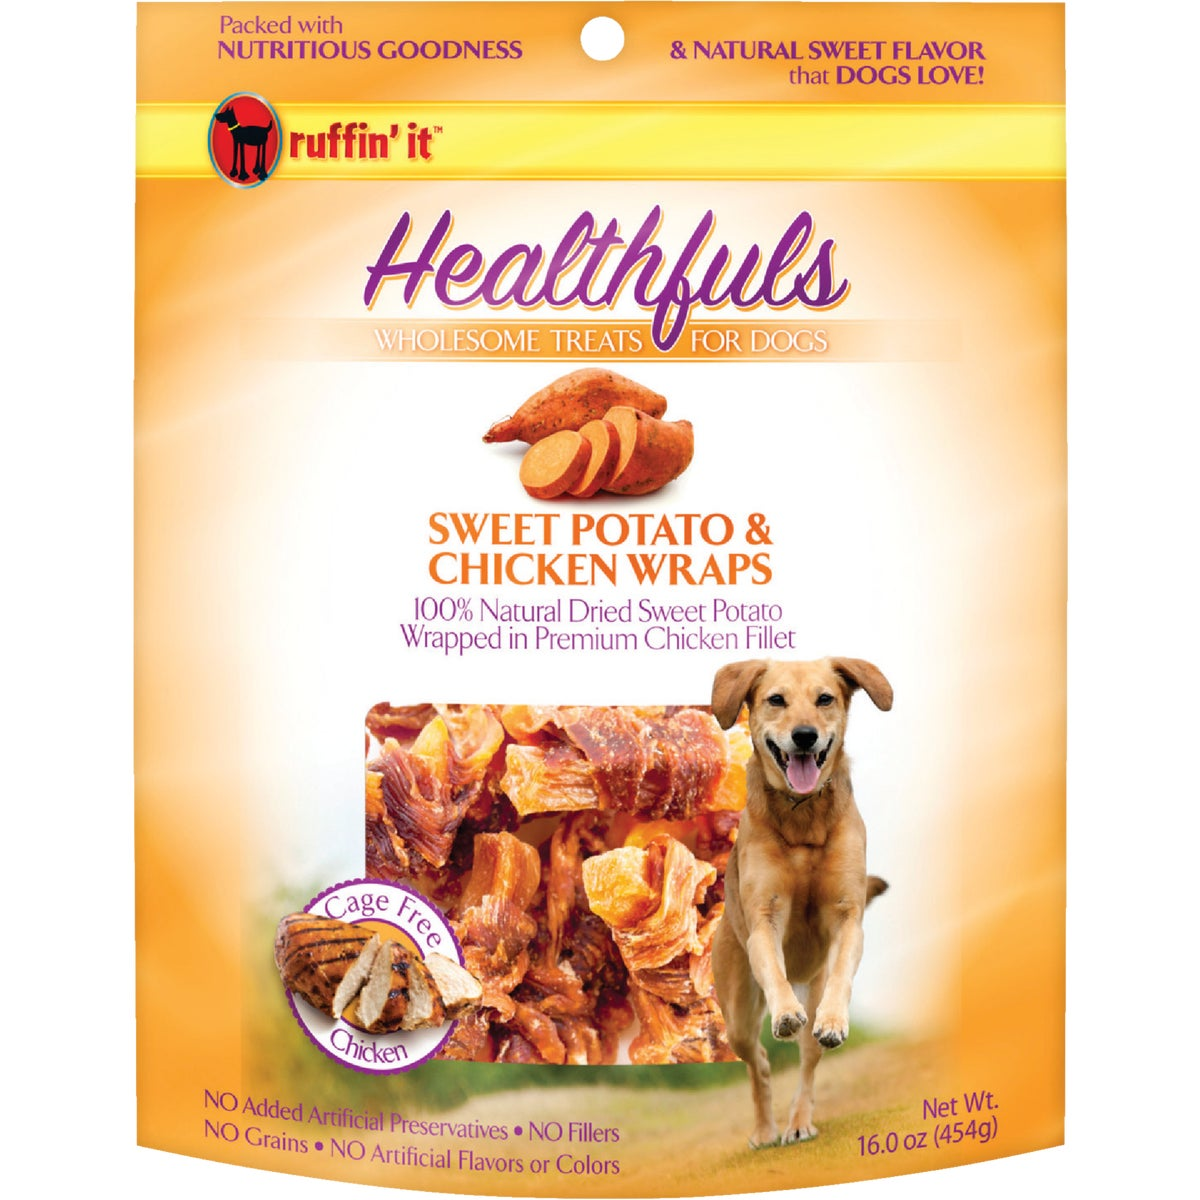 1LB CHKN/SWPOT DOG WRAPS - 08314 by Westminster Pet